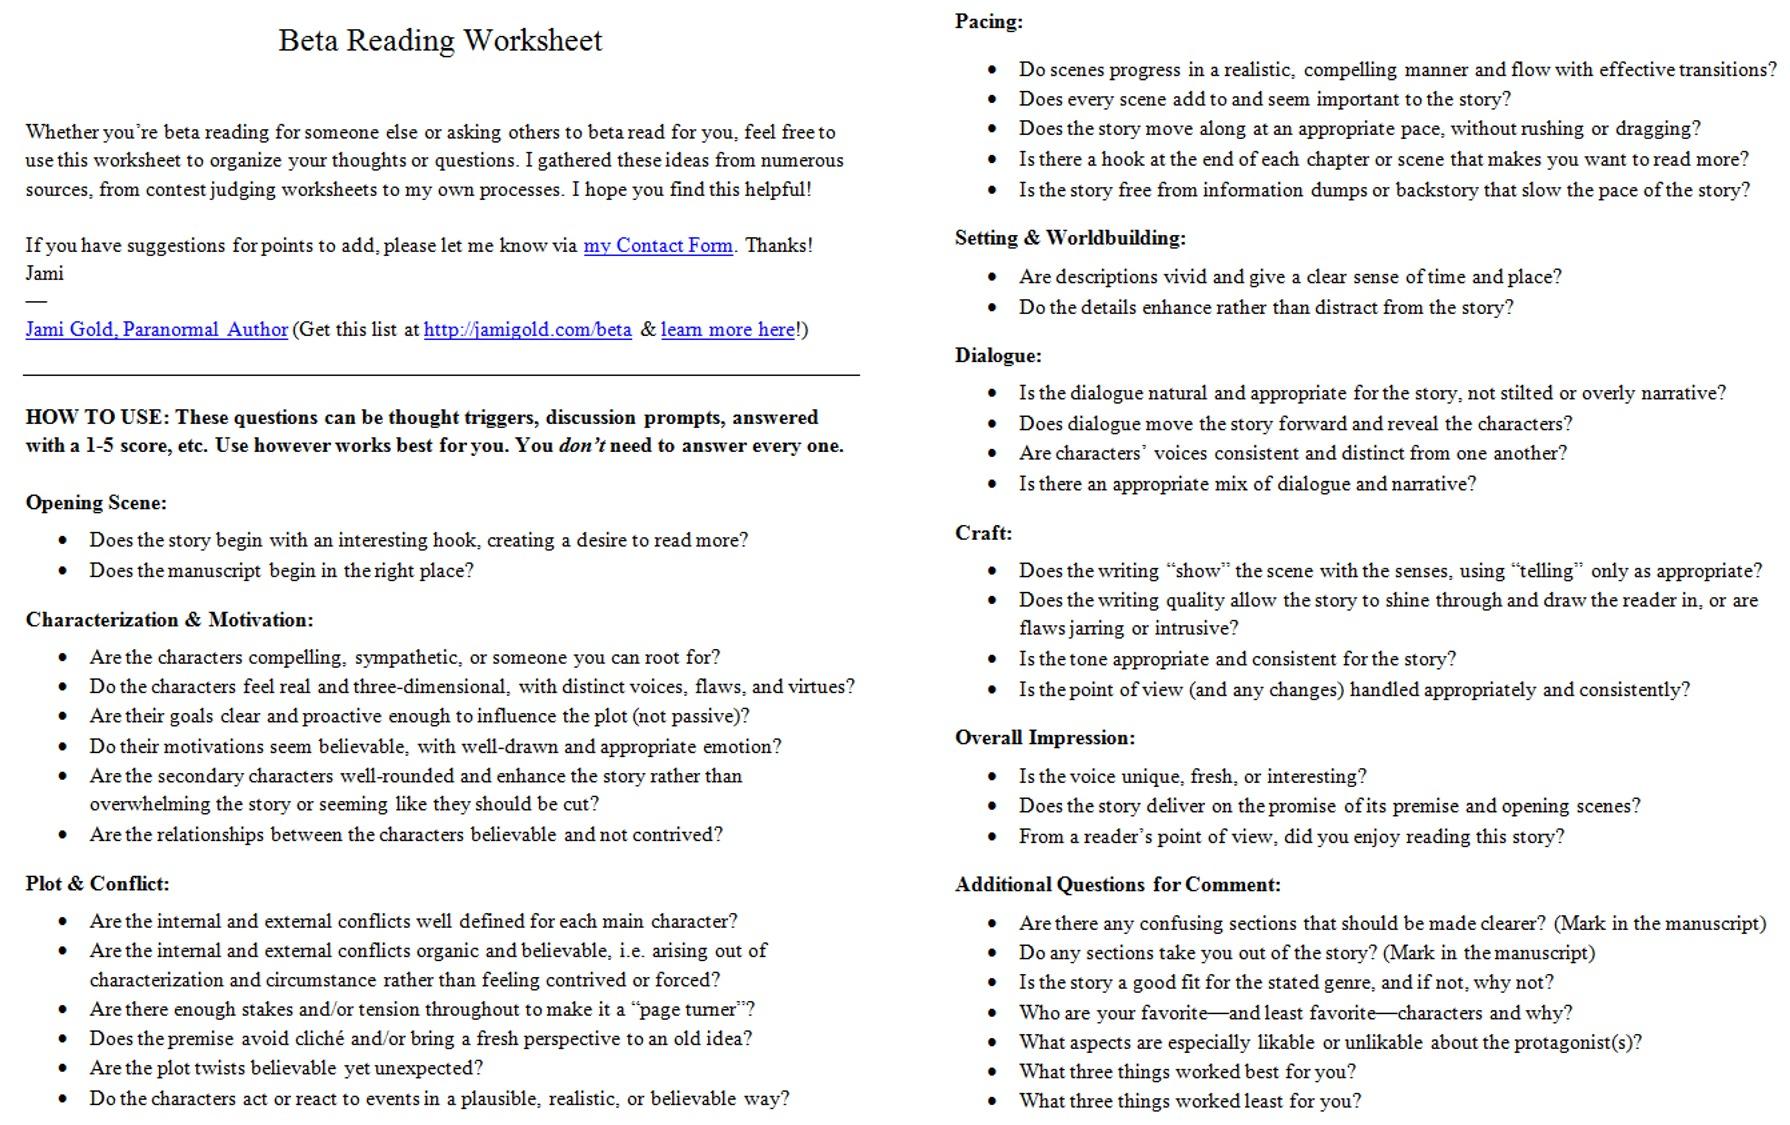 Proatmealus  Unusual Worksheets For Writers  Jami Gold Paranormal Author With Licious Screen Shot Of The Twopage Beta Reading Worksheet With Beauteous Mock Trial Worksheets Also Hide A Worksheet In Excel In Addition Free Number Line Worksheets And Water Pollution Worksheets As Well As Nmr Worksheet Additionally Step Two Aa Worksheet From Jamigoldcom With Proatmealus  Licious Worksheets For Writers  Jami Gold Paranormal Author With Beauteous Screen Shot Of The Twopage Beta Reading Worksheet And Unusual Mock Trial Worksheets Also Hide A Worksheet In Excel In Addition Free Number Line Worksheets From Jamigoldcom